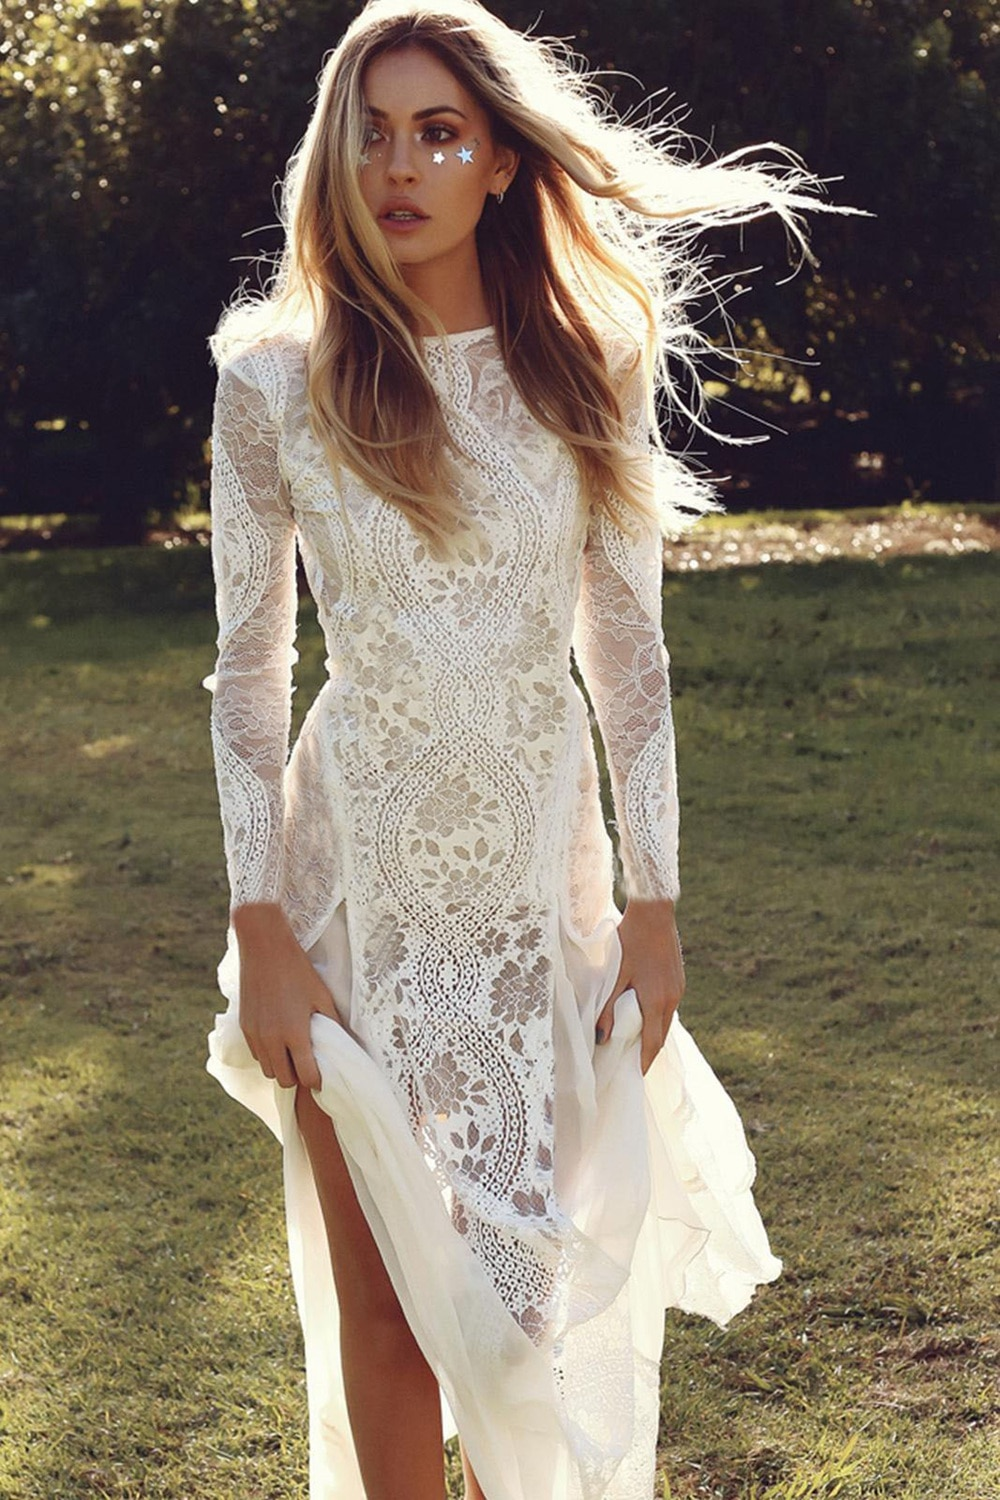 Sexy Hollow Lace Long Maxi Dress Women Summer Long Sleeve Backless Mesh Party Beach Wedding Dress Elegant Bodycon White Clothes